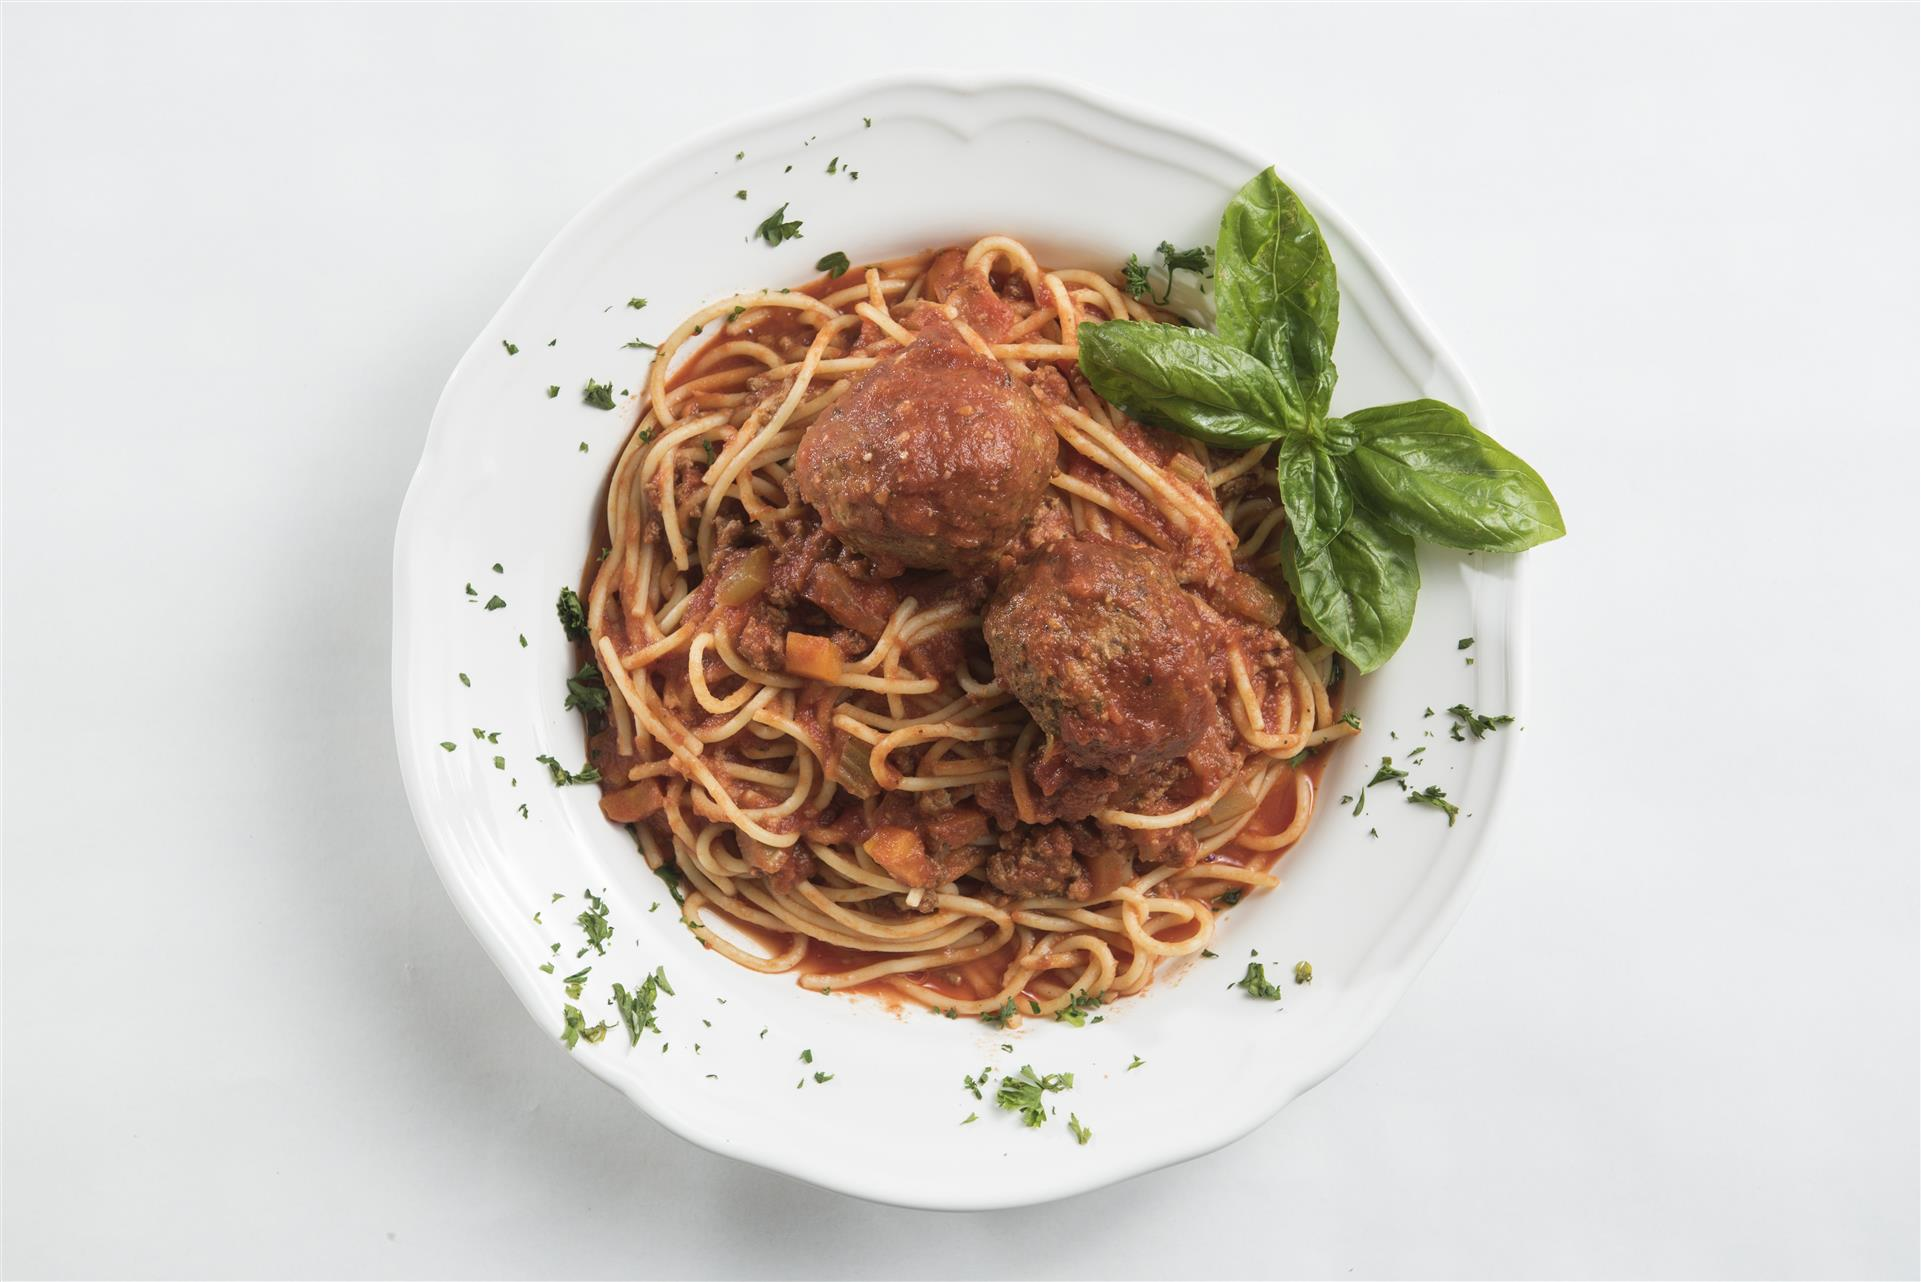 spaghetti with two meatballs topped with fresh basil in a bowl